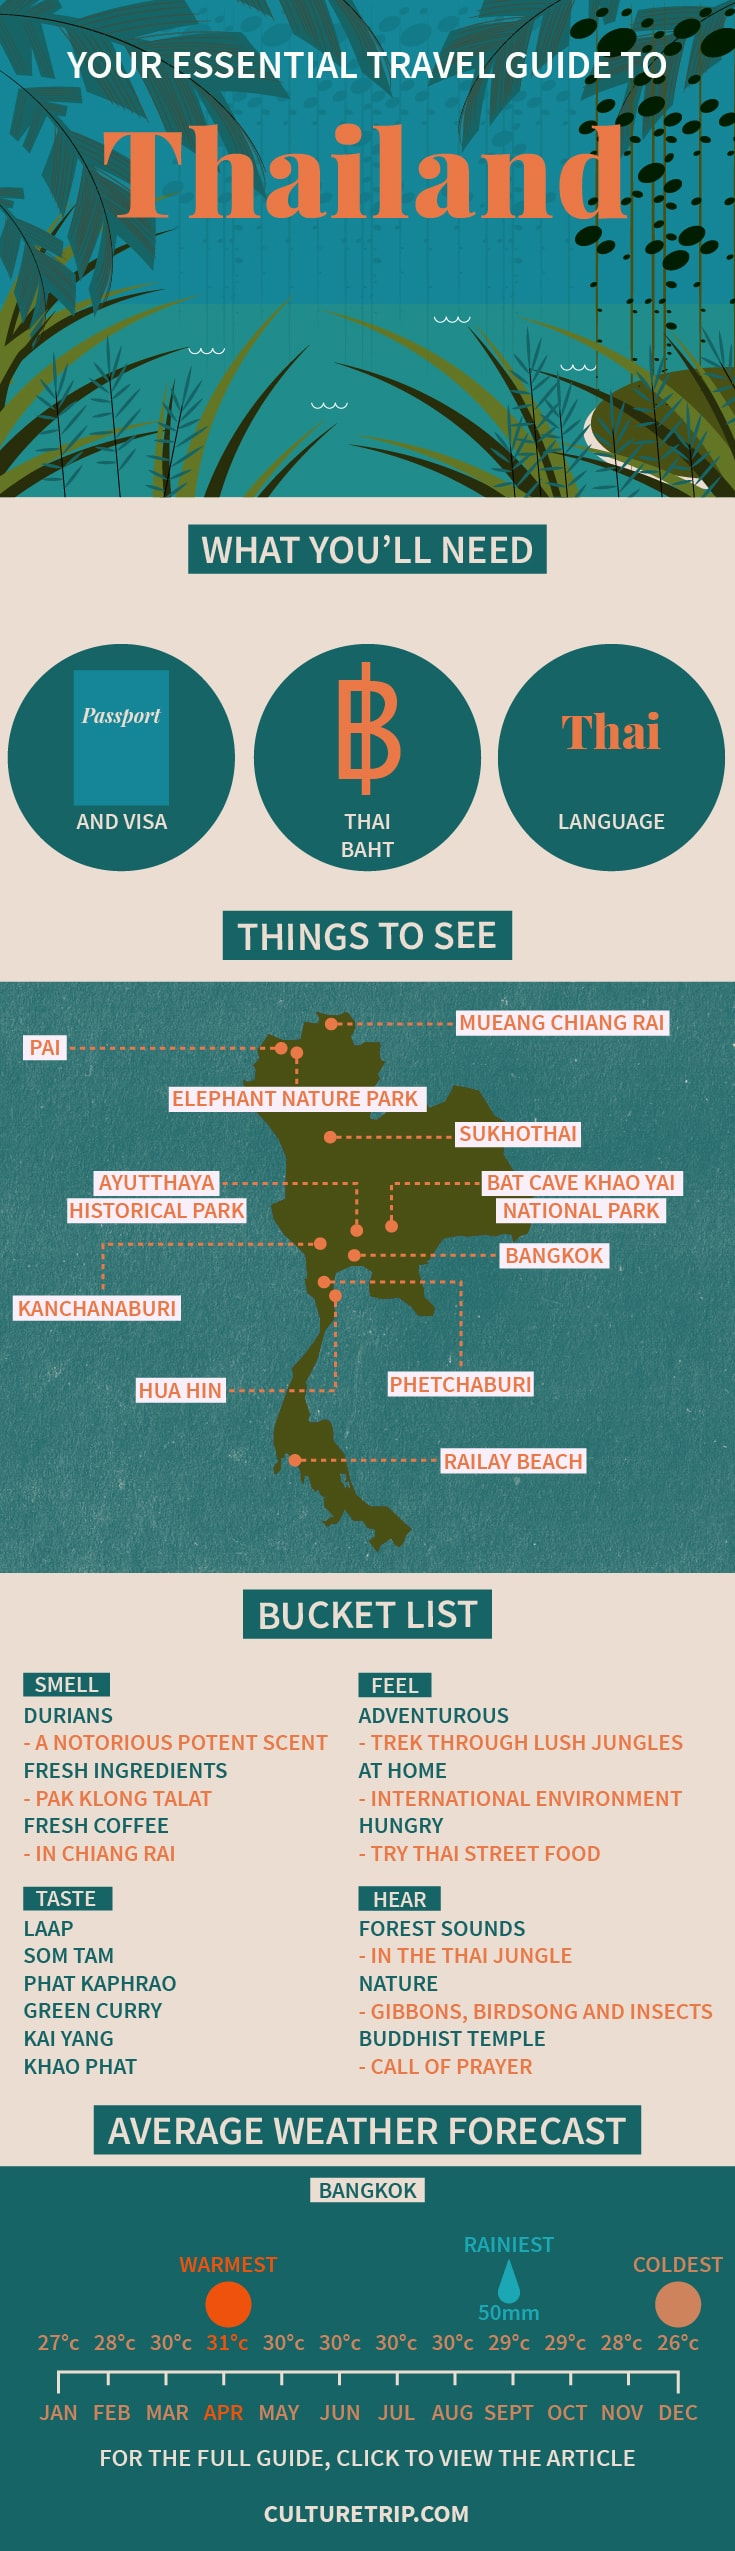 A travel guide for planning your trip to Thailand.